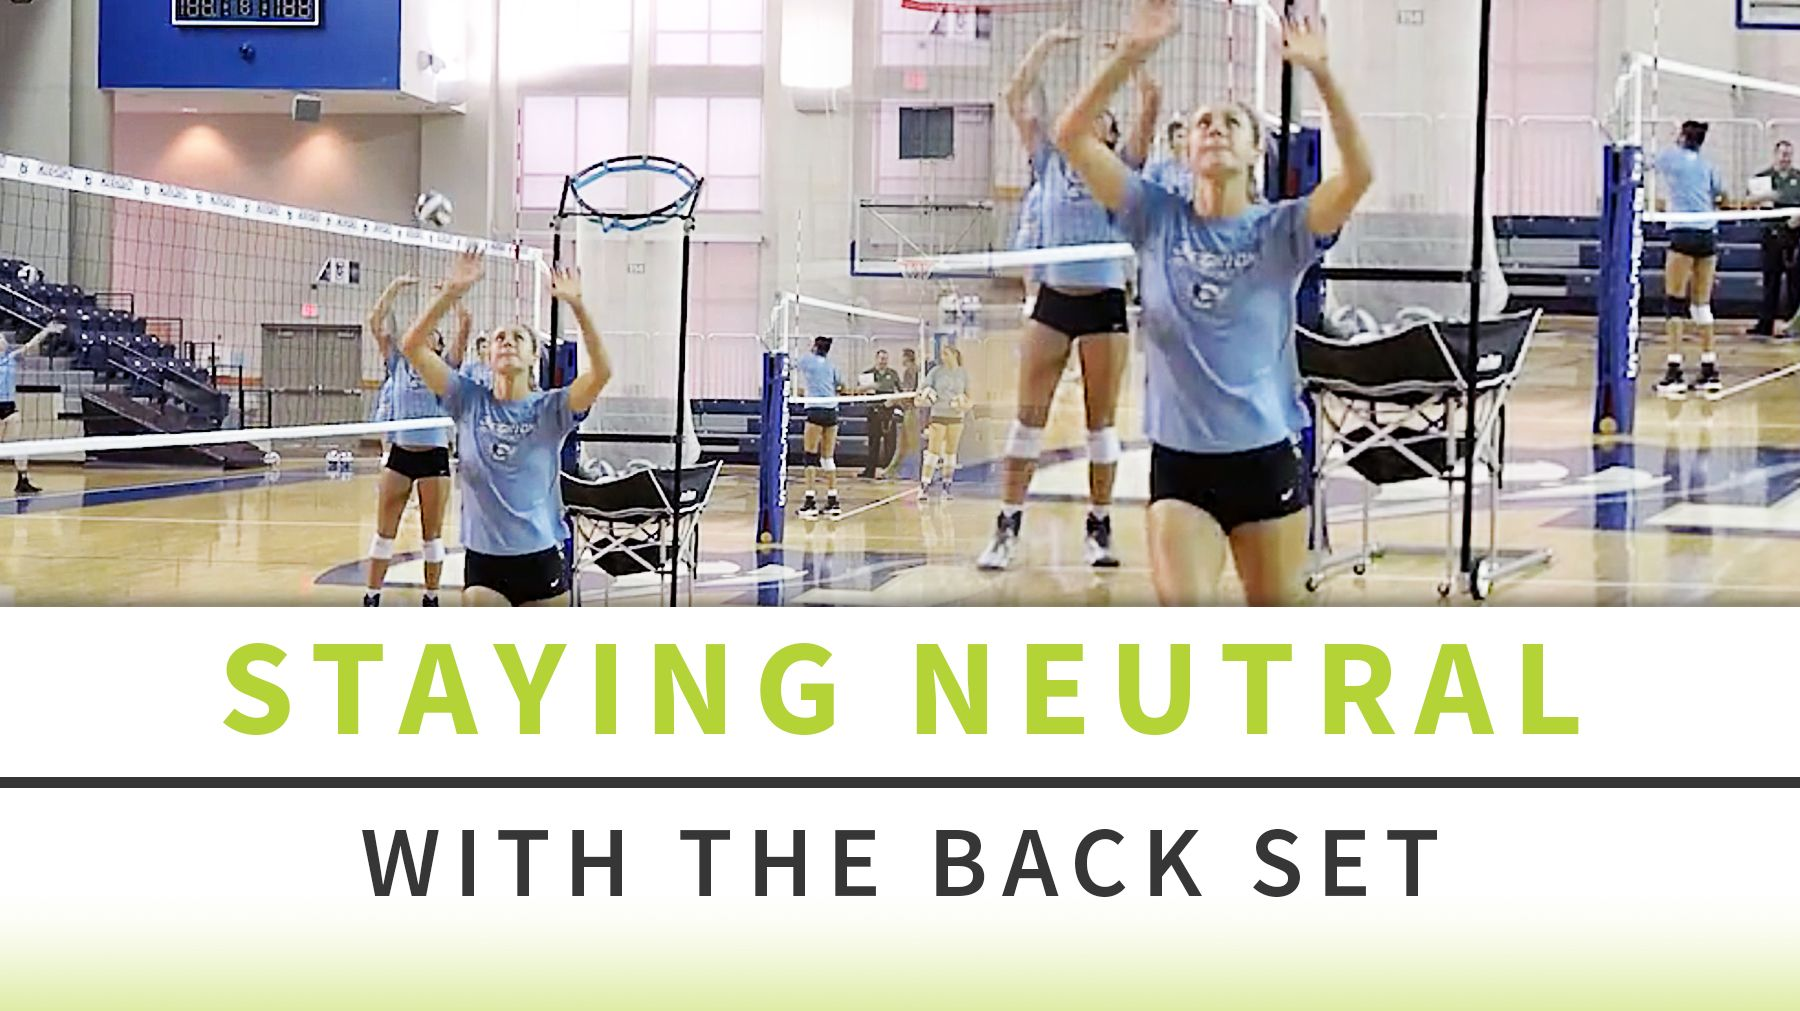 Staying Neutral With The Back Set Coaching Volleyball Volleyball Sports Photography